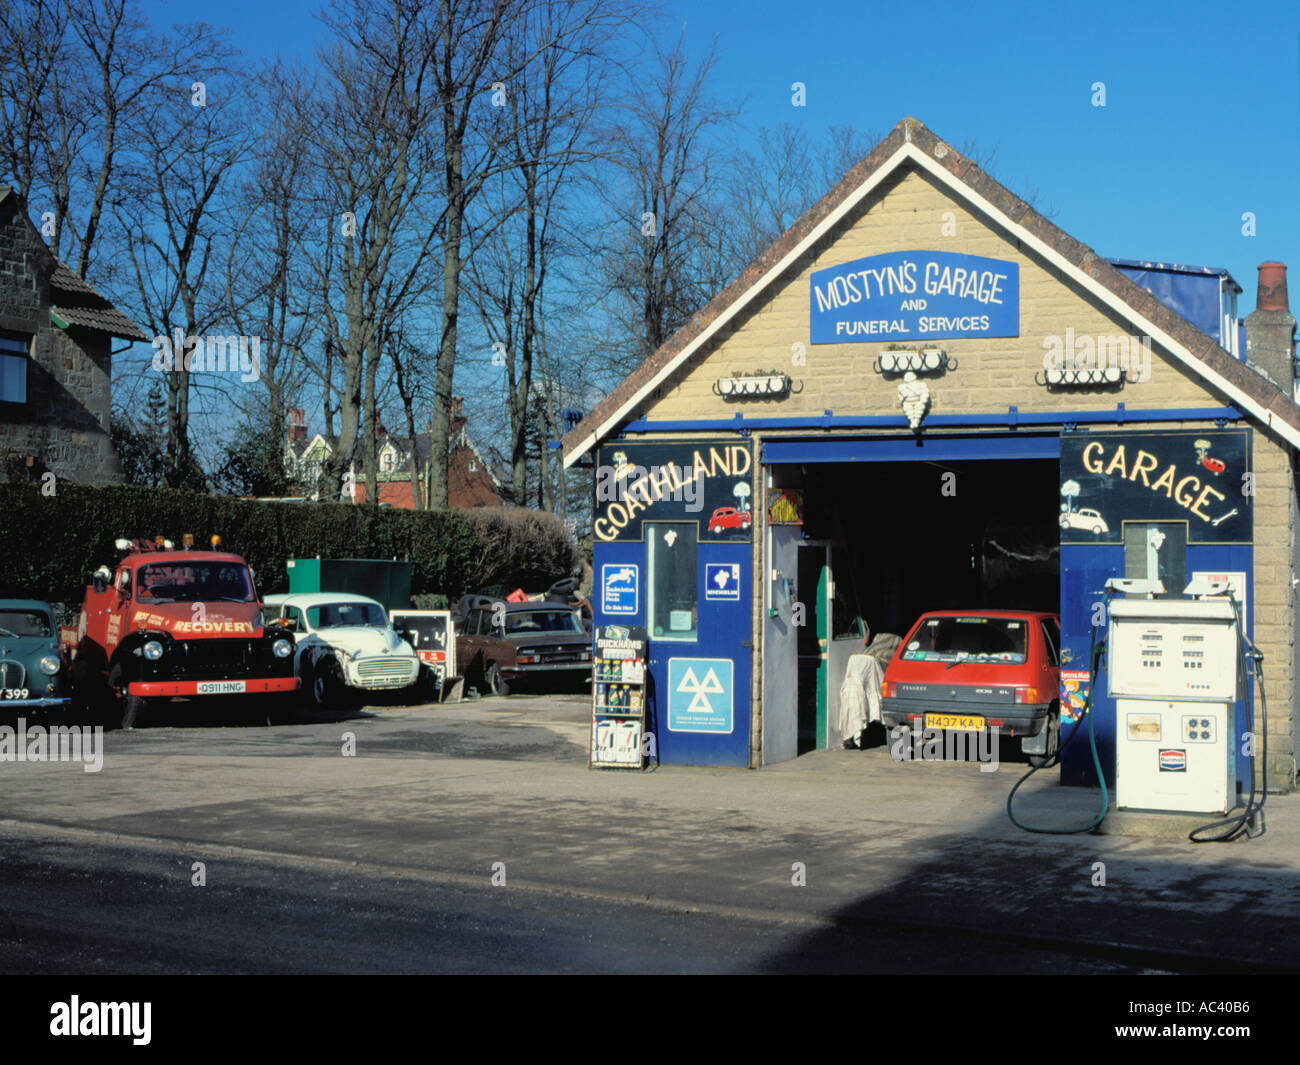 Mostyns Garage Goathland Village North York Moors